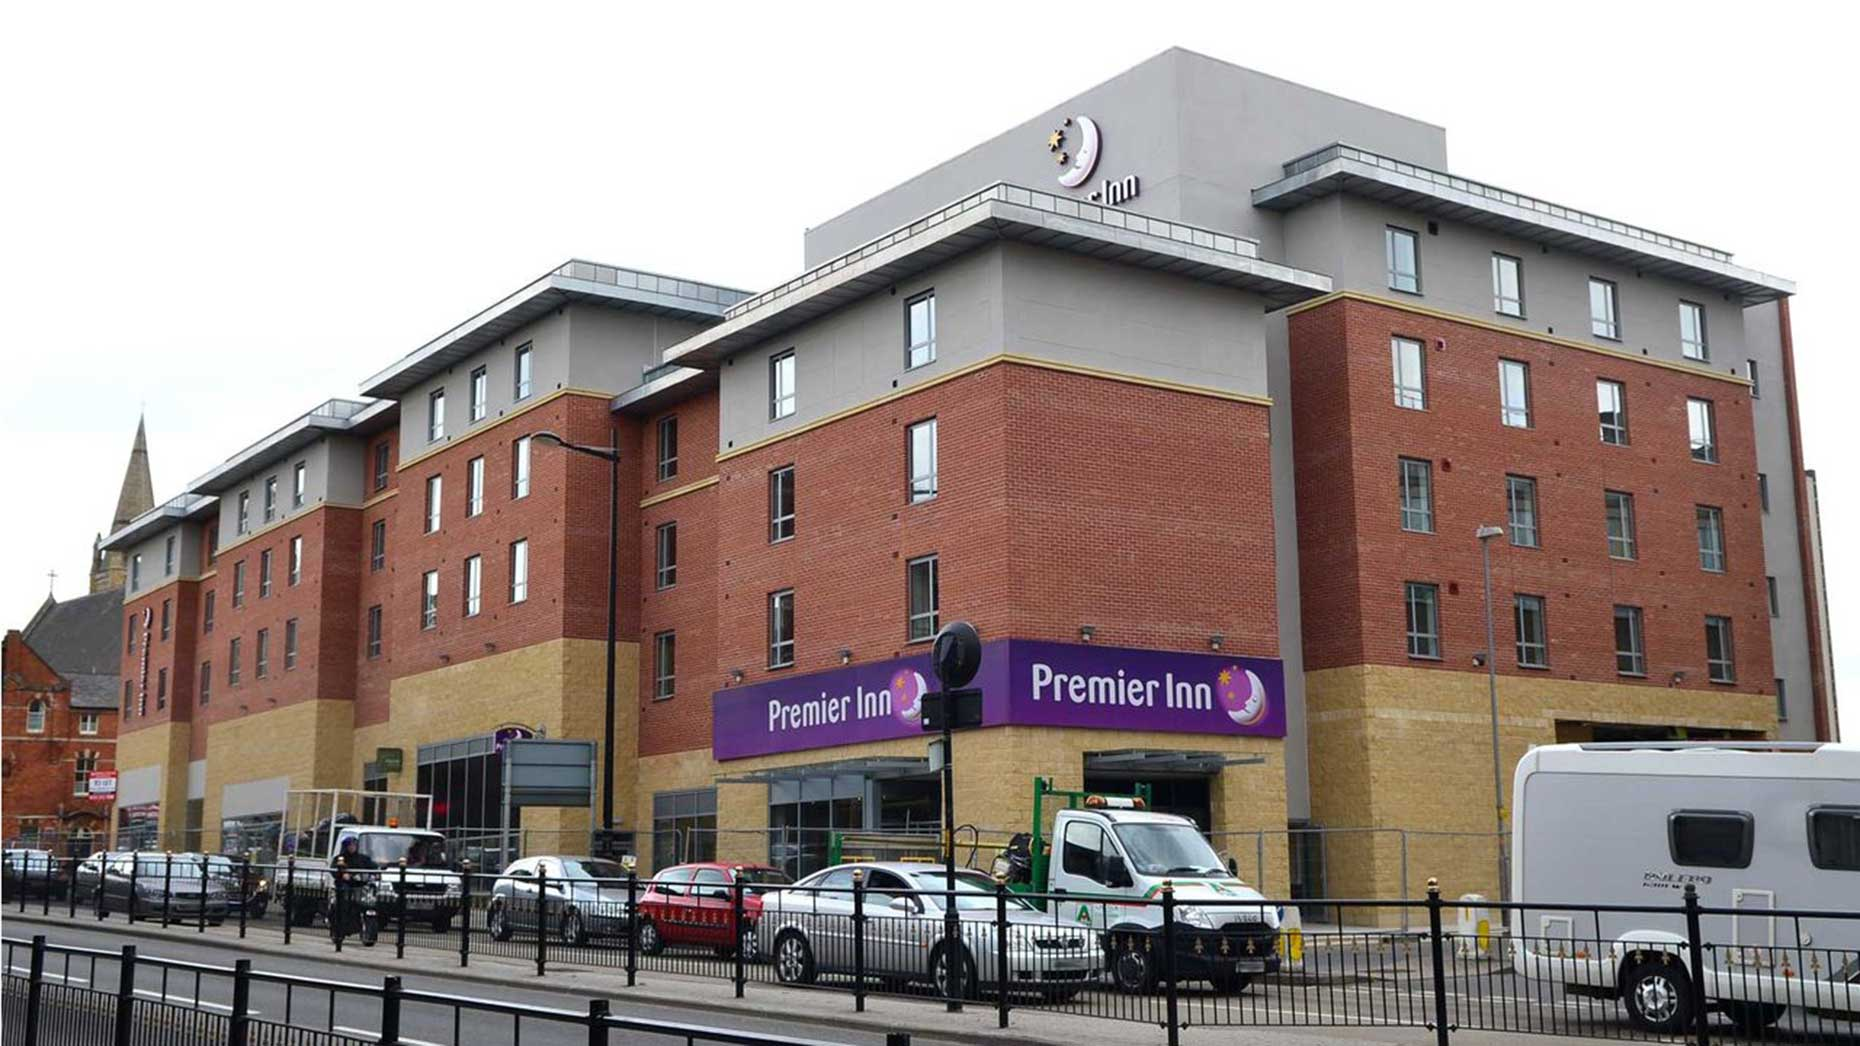 premier inn Hotels discount